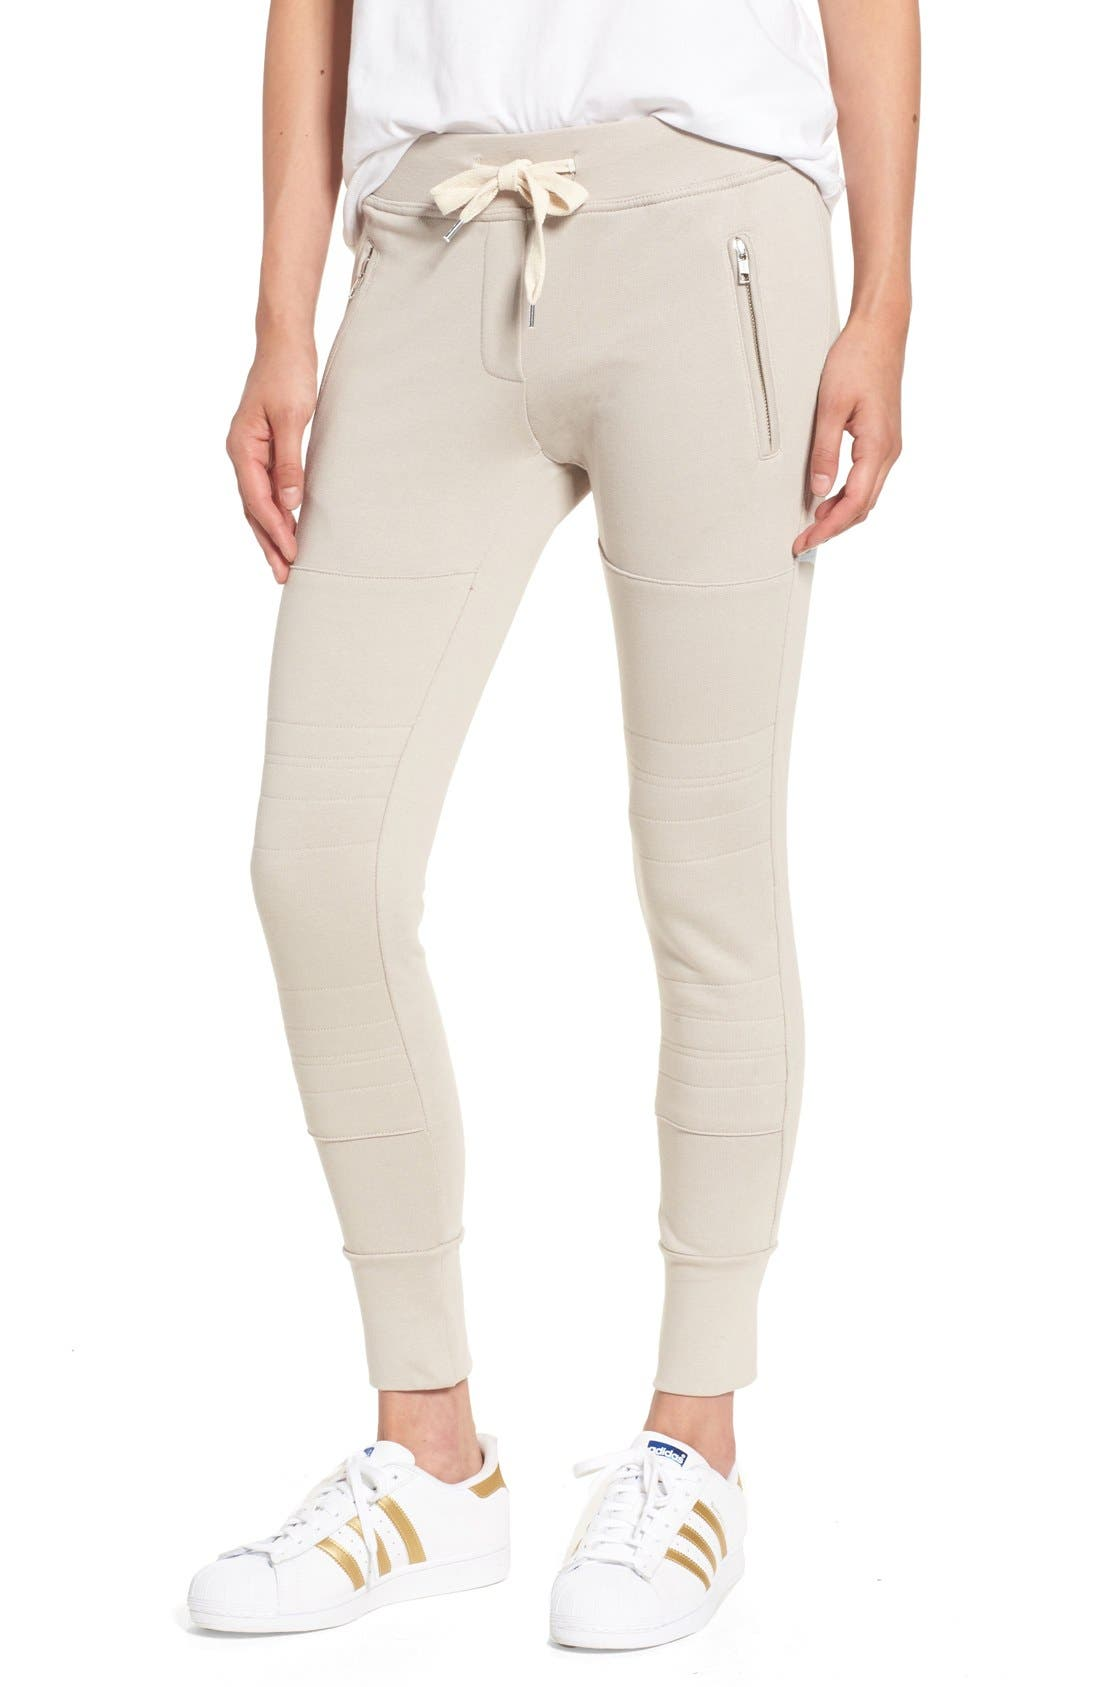 Alternate Image 1 Selected - Sincerely Jules 'Lux' Skinny Cotton Jogger Pants